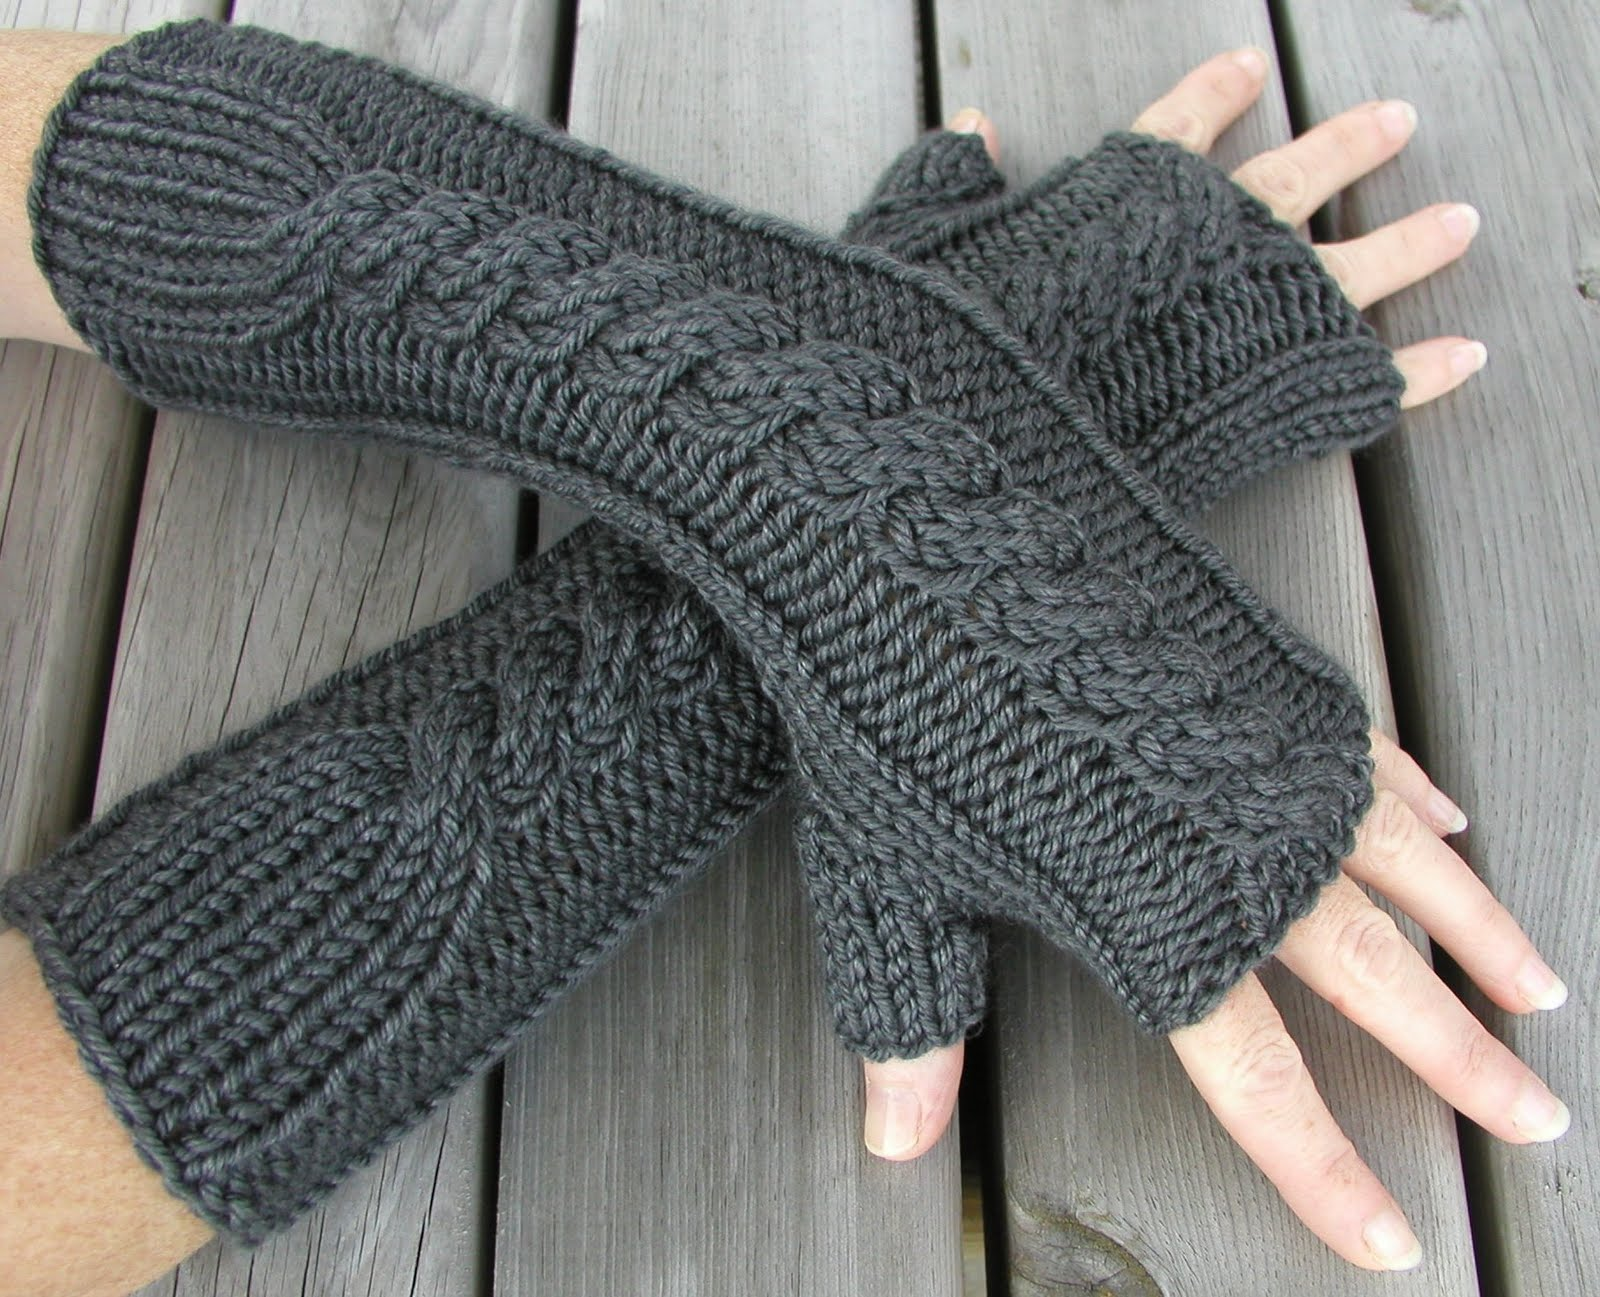 Knit Fingerless Gloves Pattern Free : Hand Knitted Things Patterns